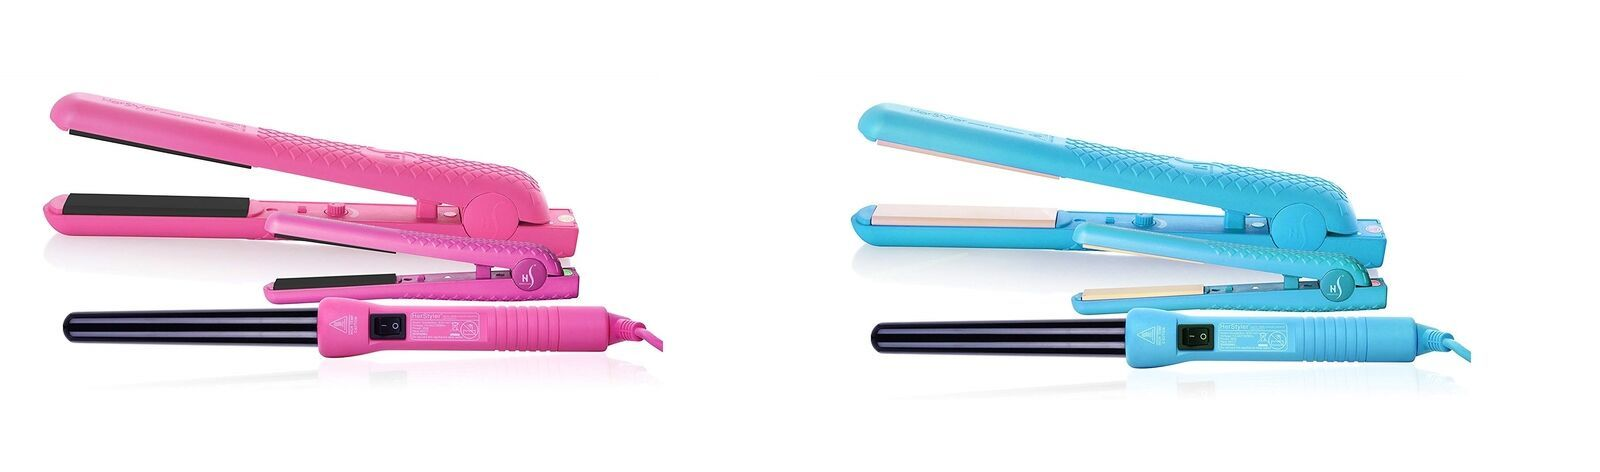 Primary image for Herstyler Colorful Hair Straightener, Curling Iron and Mini Flat Iron Full Set